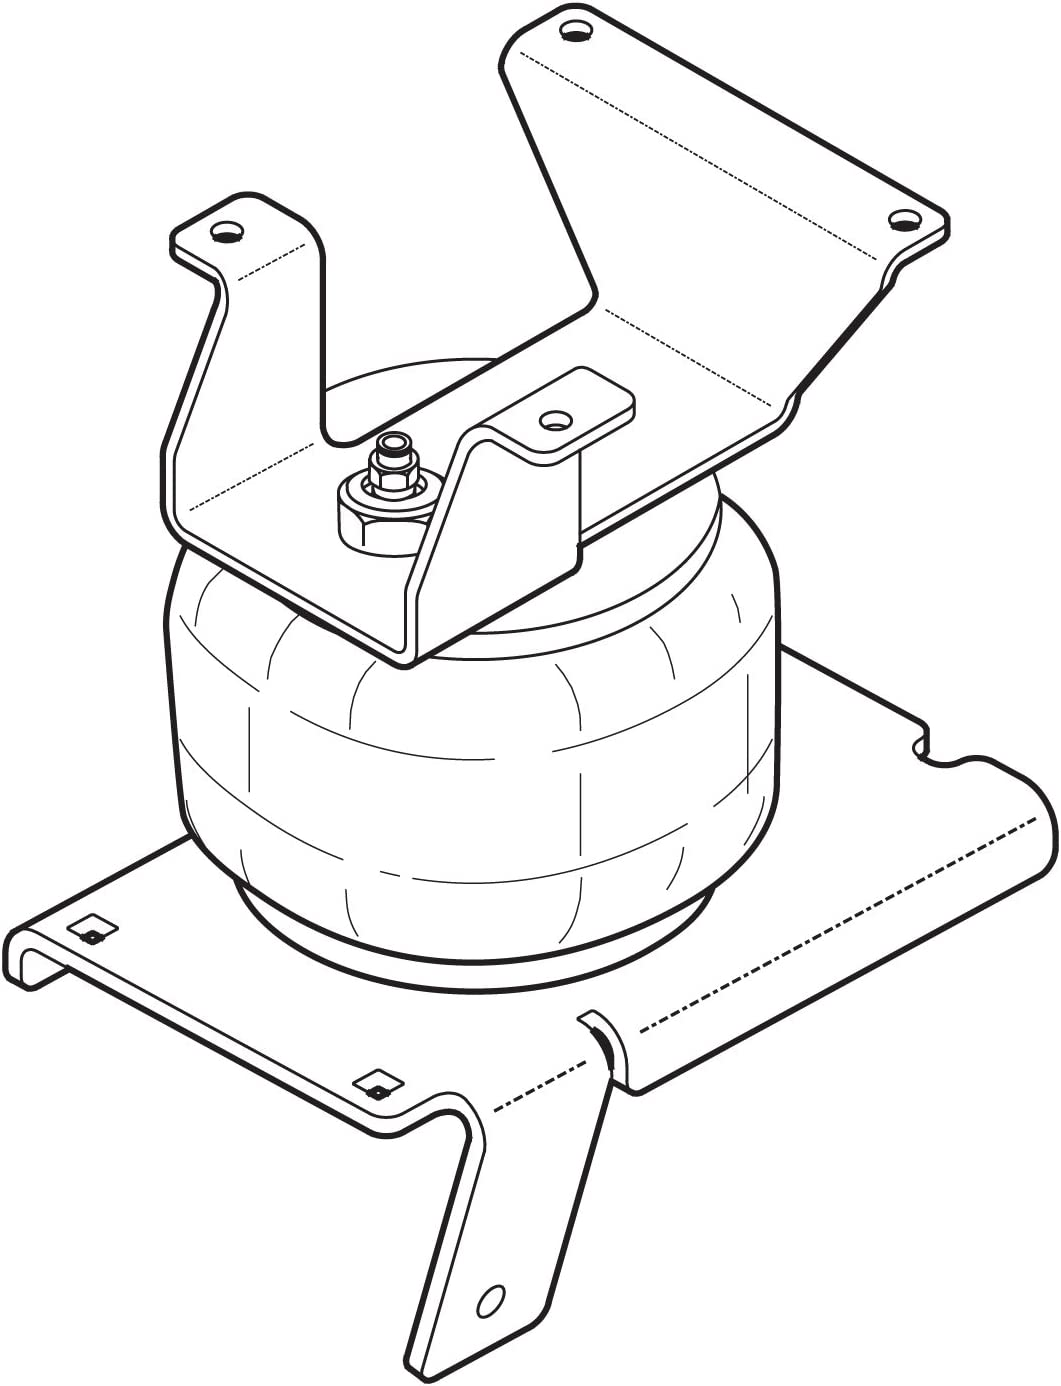 30 Chevy Express Front Suspension Diagram